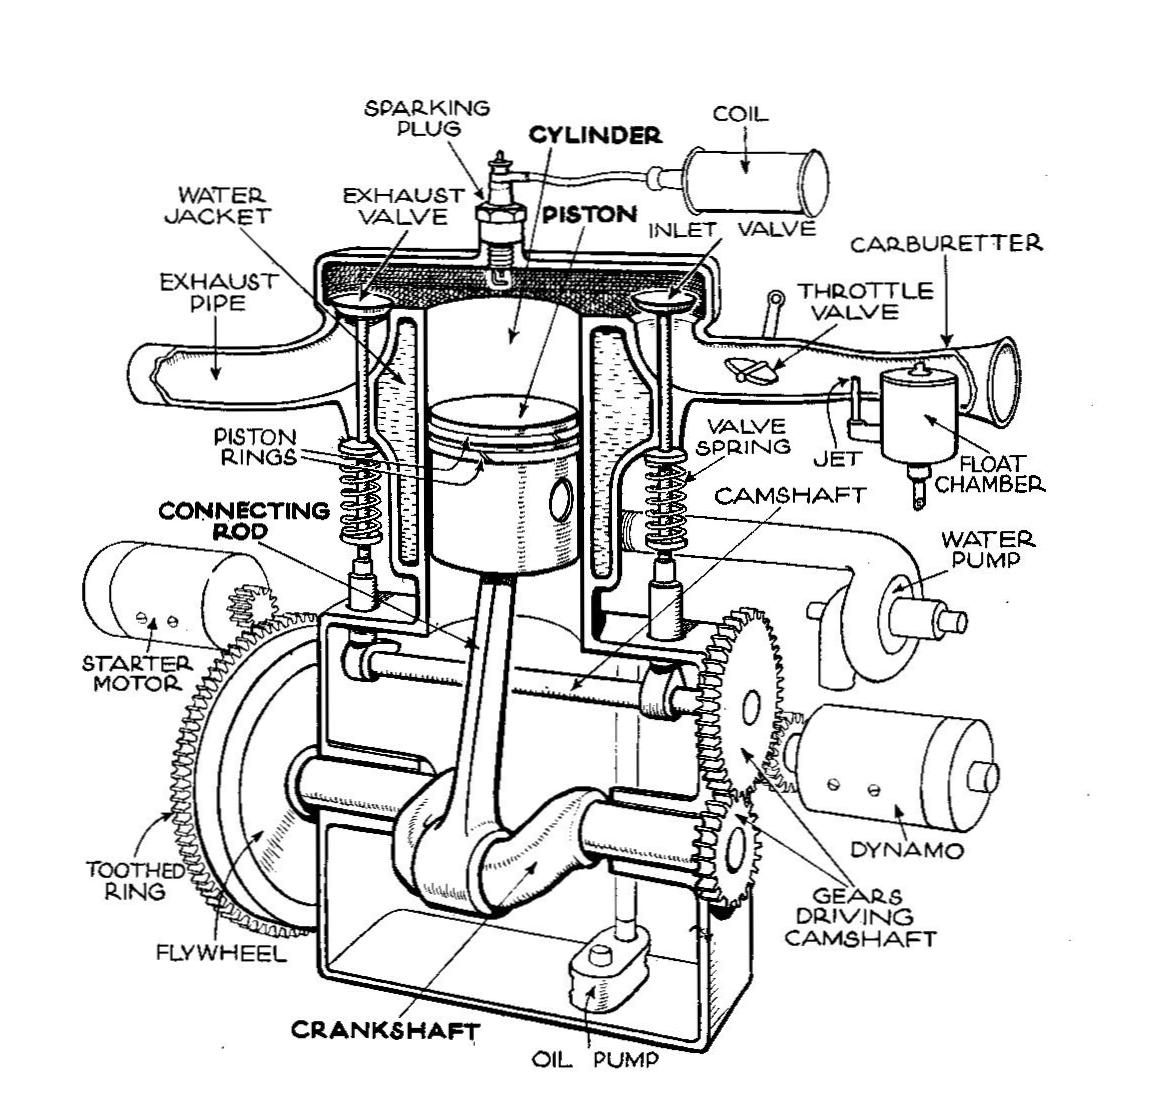 4 Cylinder Engine Diagram Another Blog About Wiring 2002 Honda Accord Parts Flathead Wikipedia 1998 Toyota Camry 2001